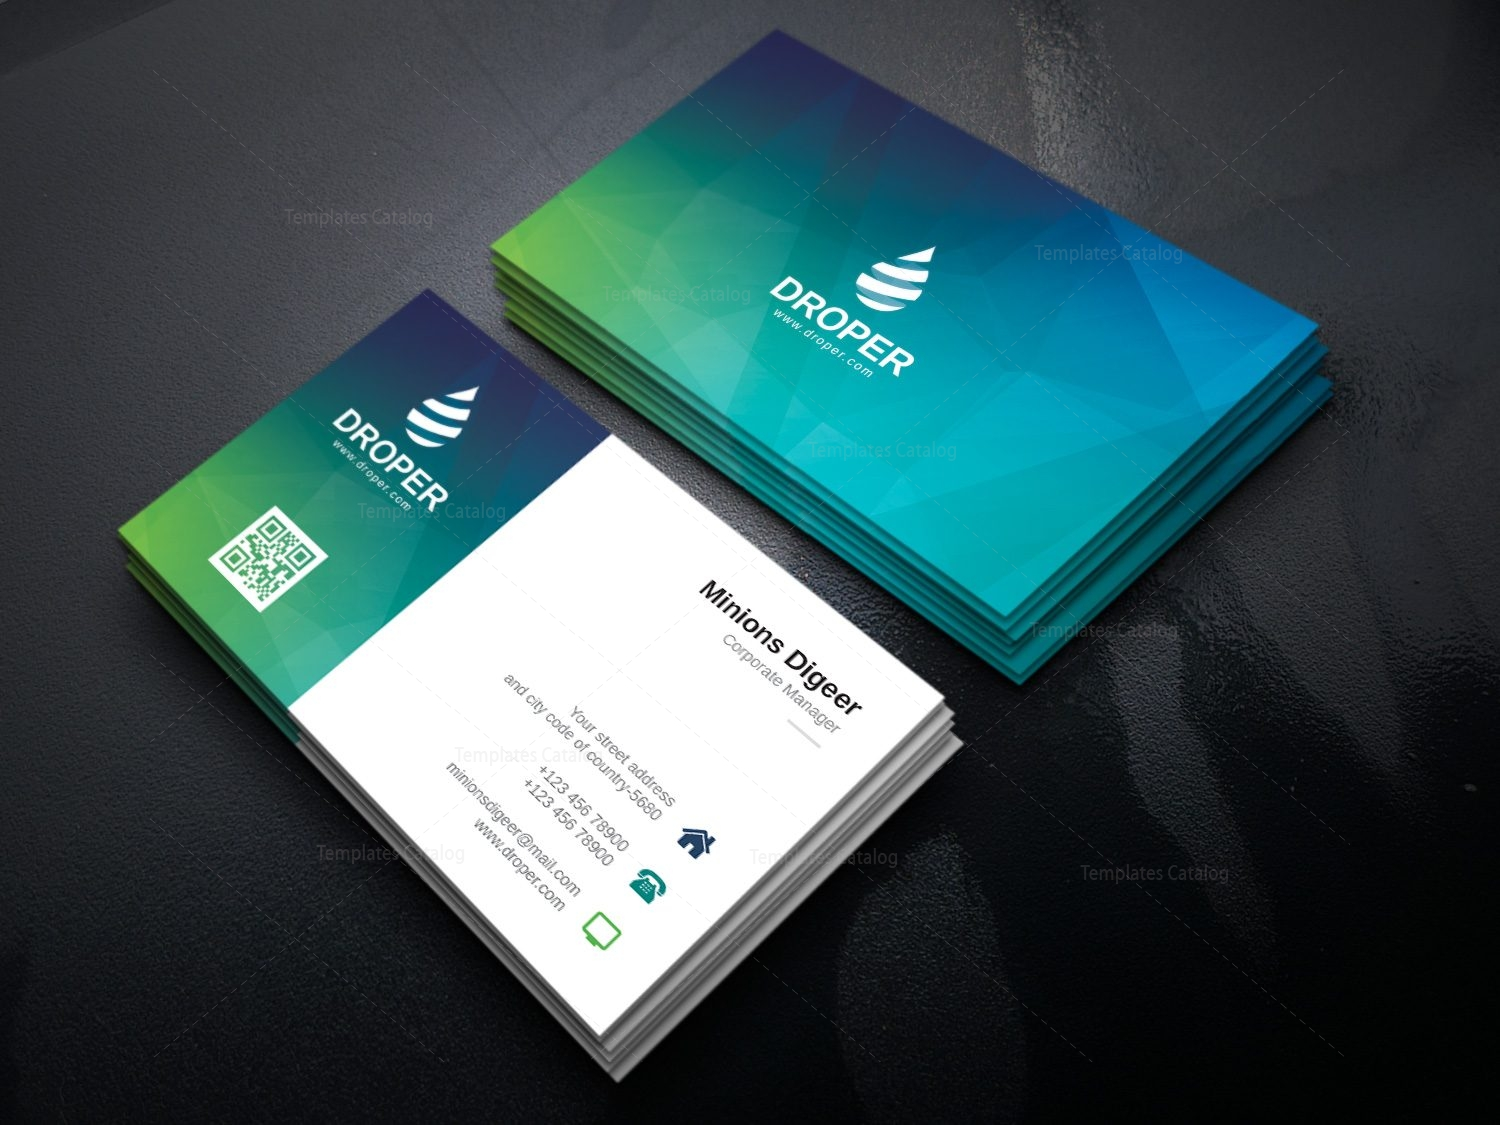 Dolphin modern corporate business card template 000924 template dolphin modern corporate business card template 3 fbccfo